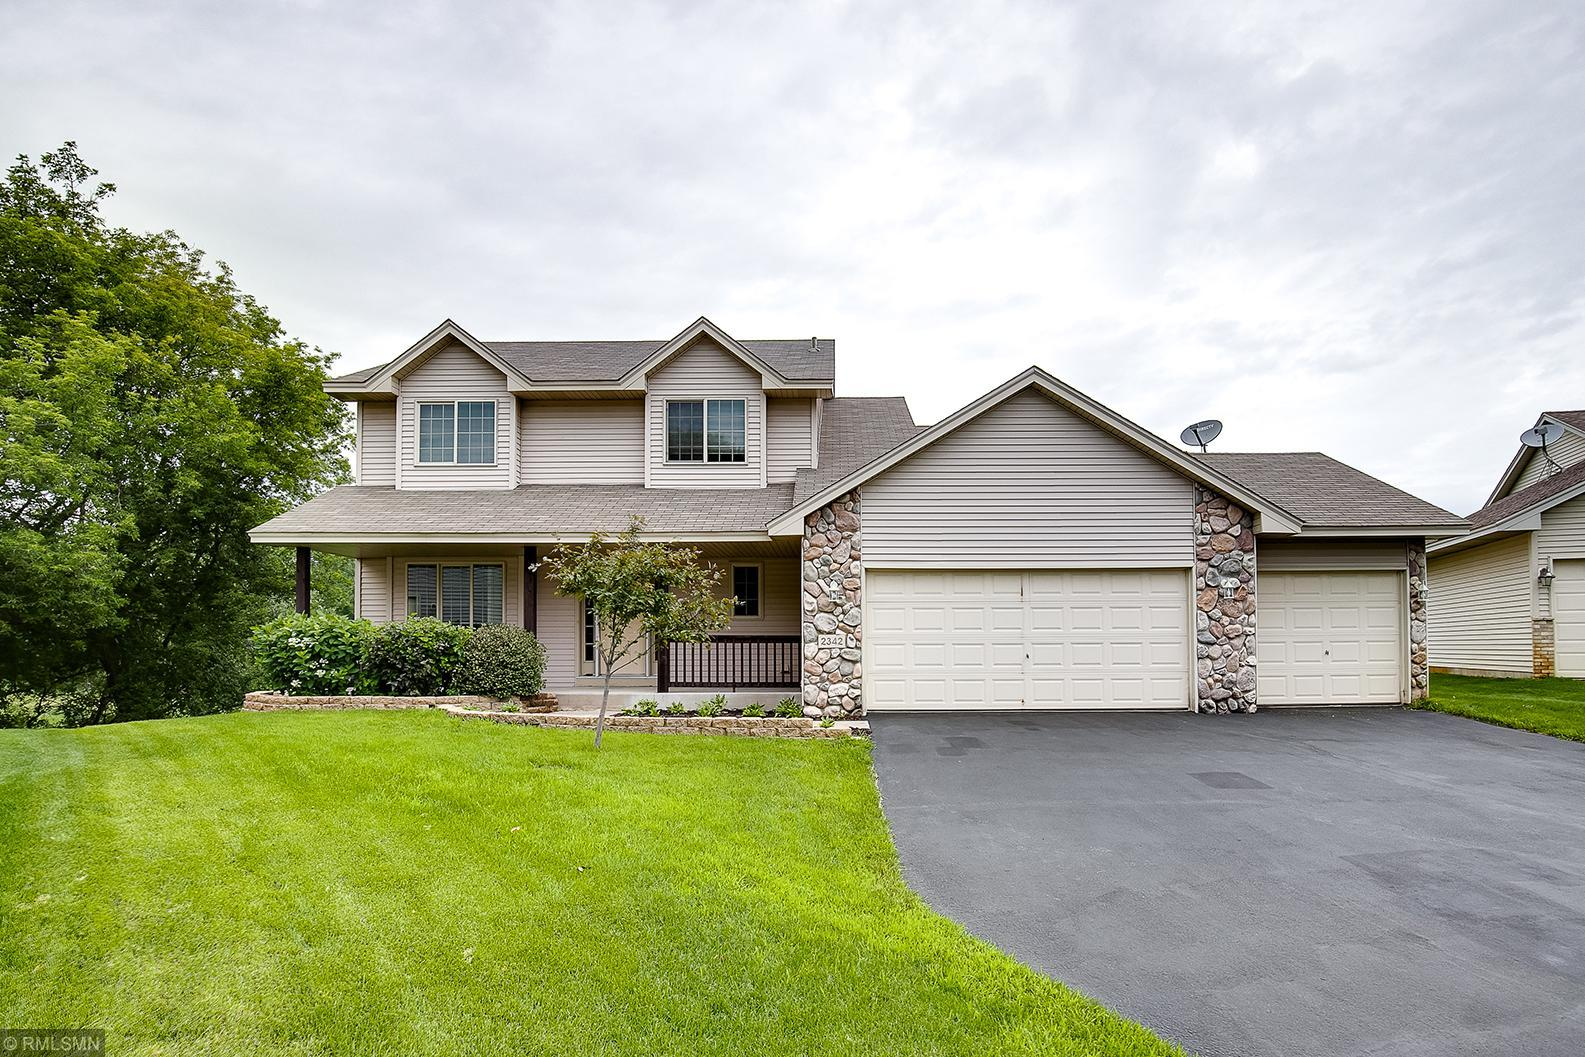 2342 121st NW Property Photo - Coon Rapids, MN real estate listing